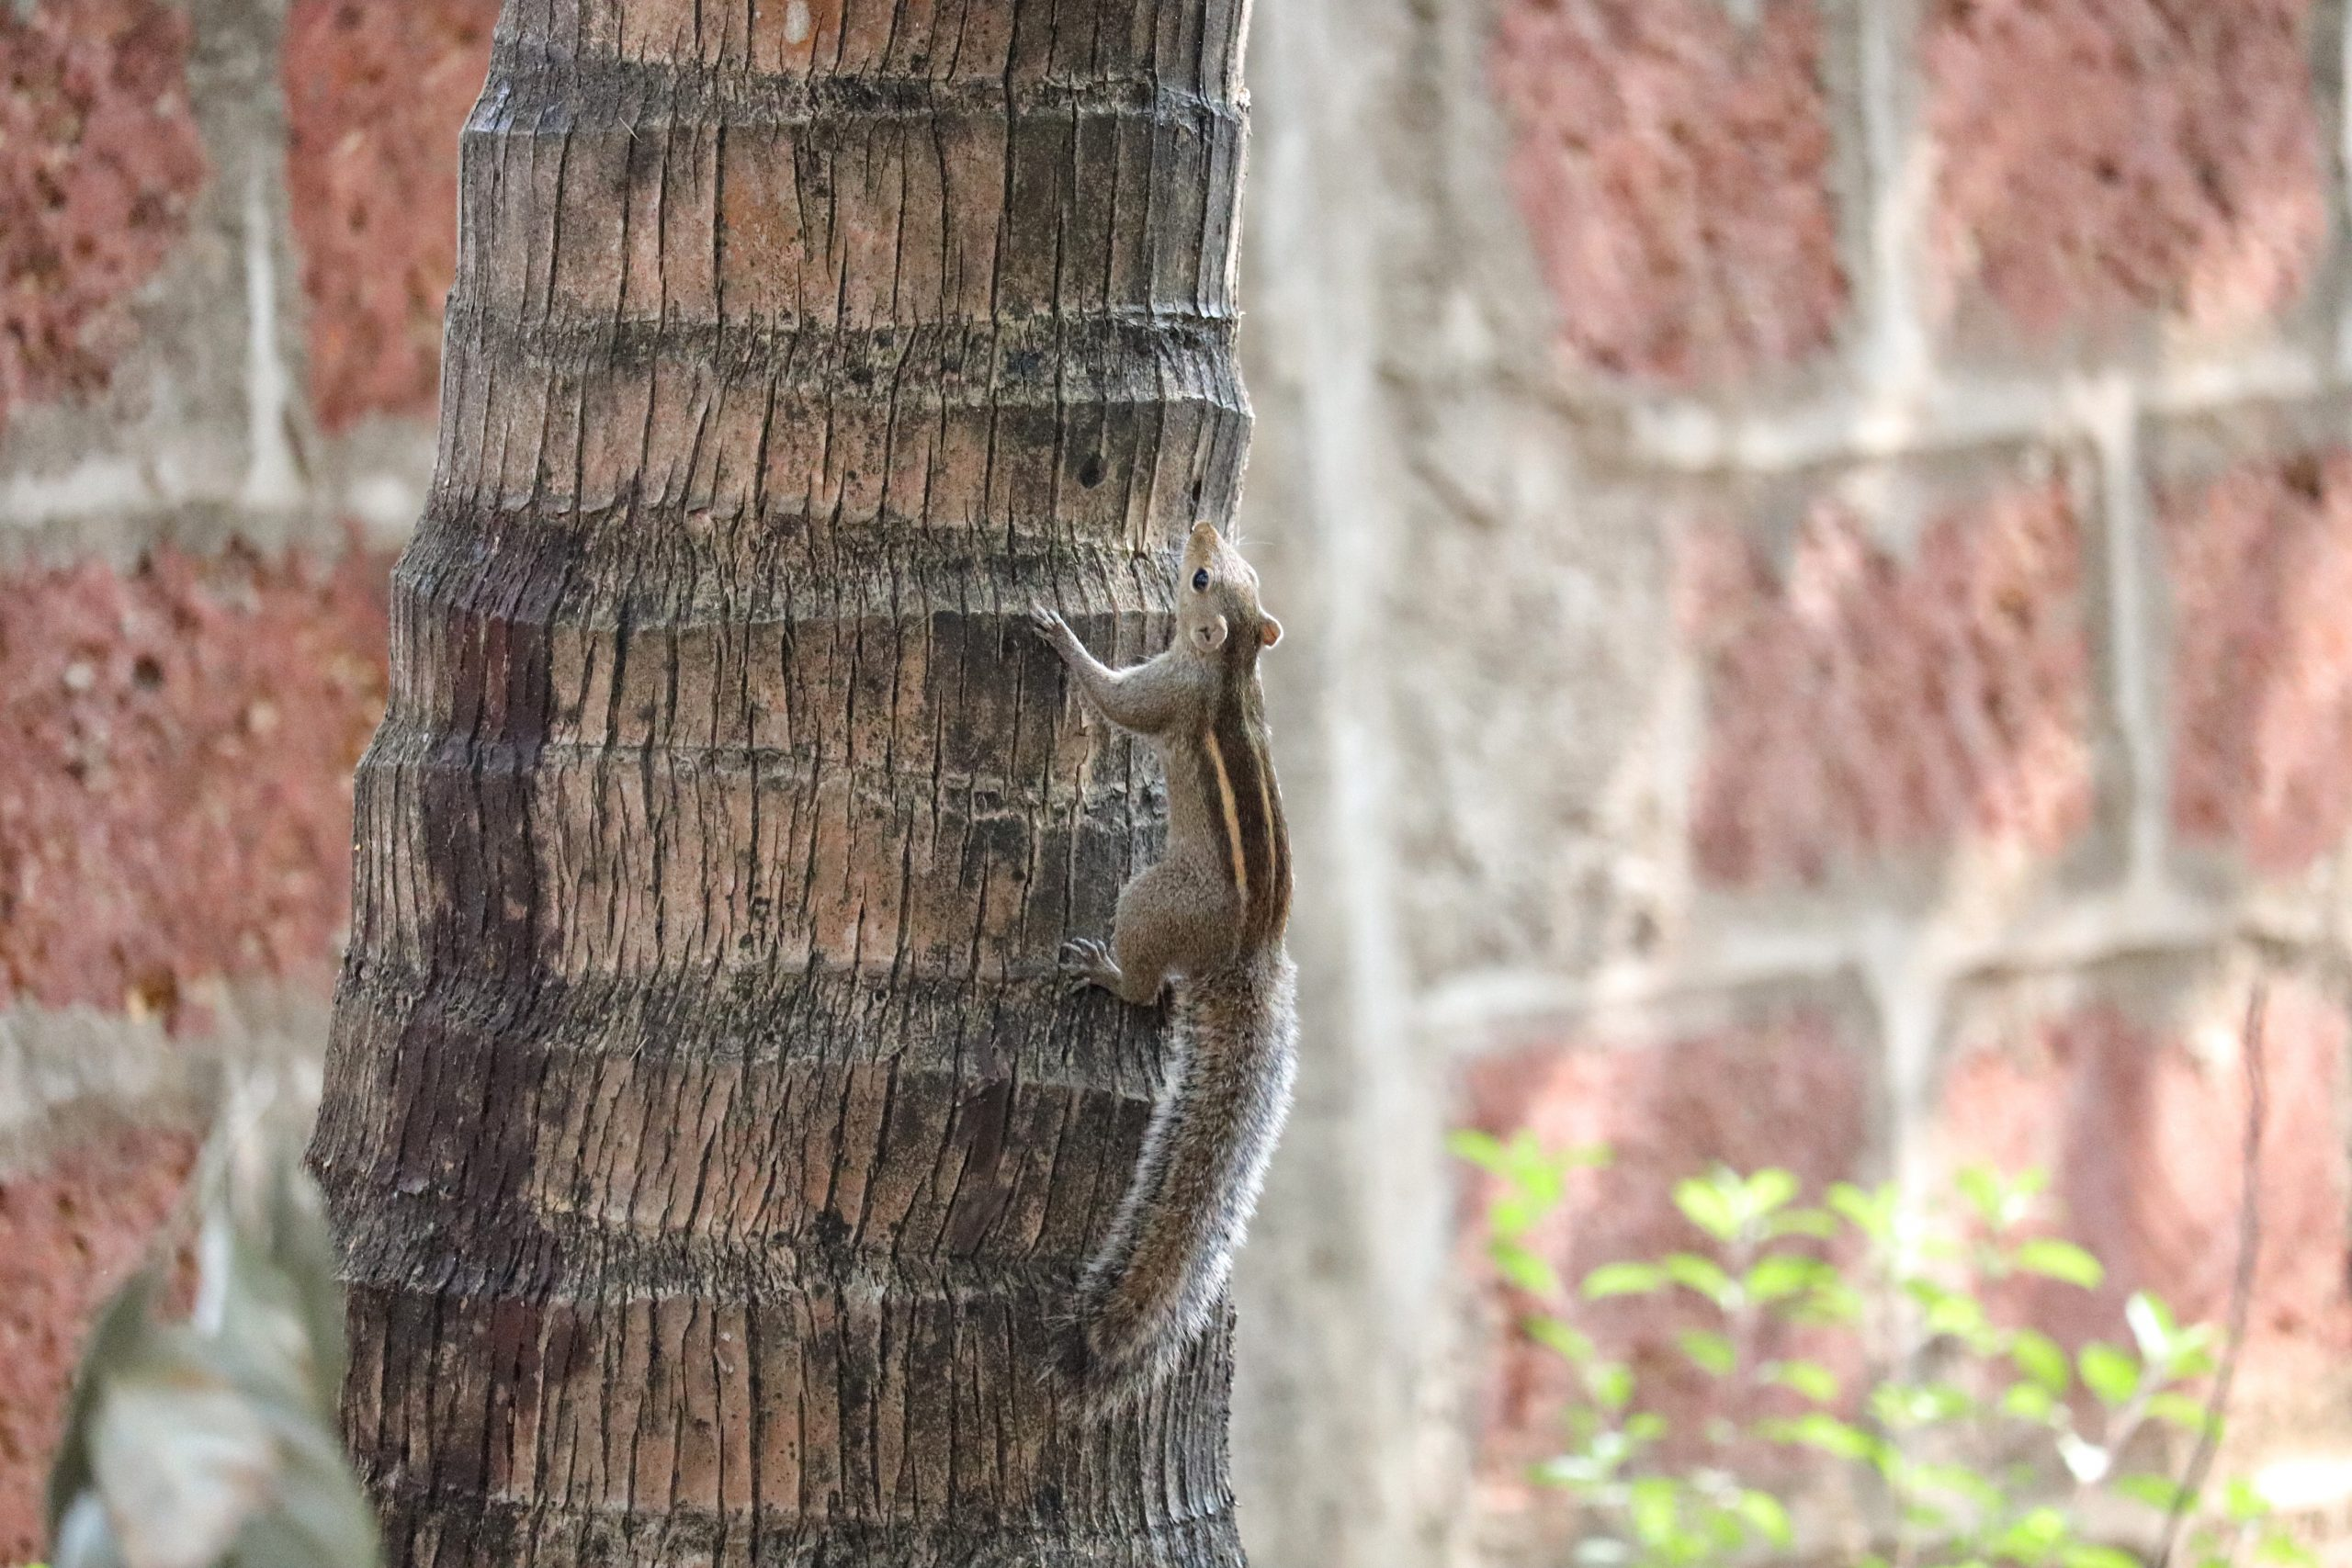 Squirrel climbing on a tree.